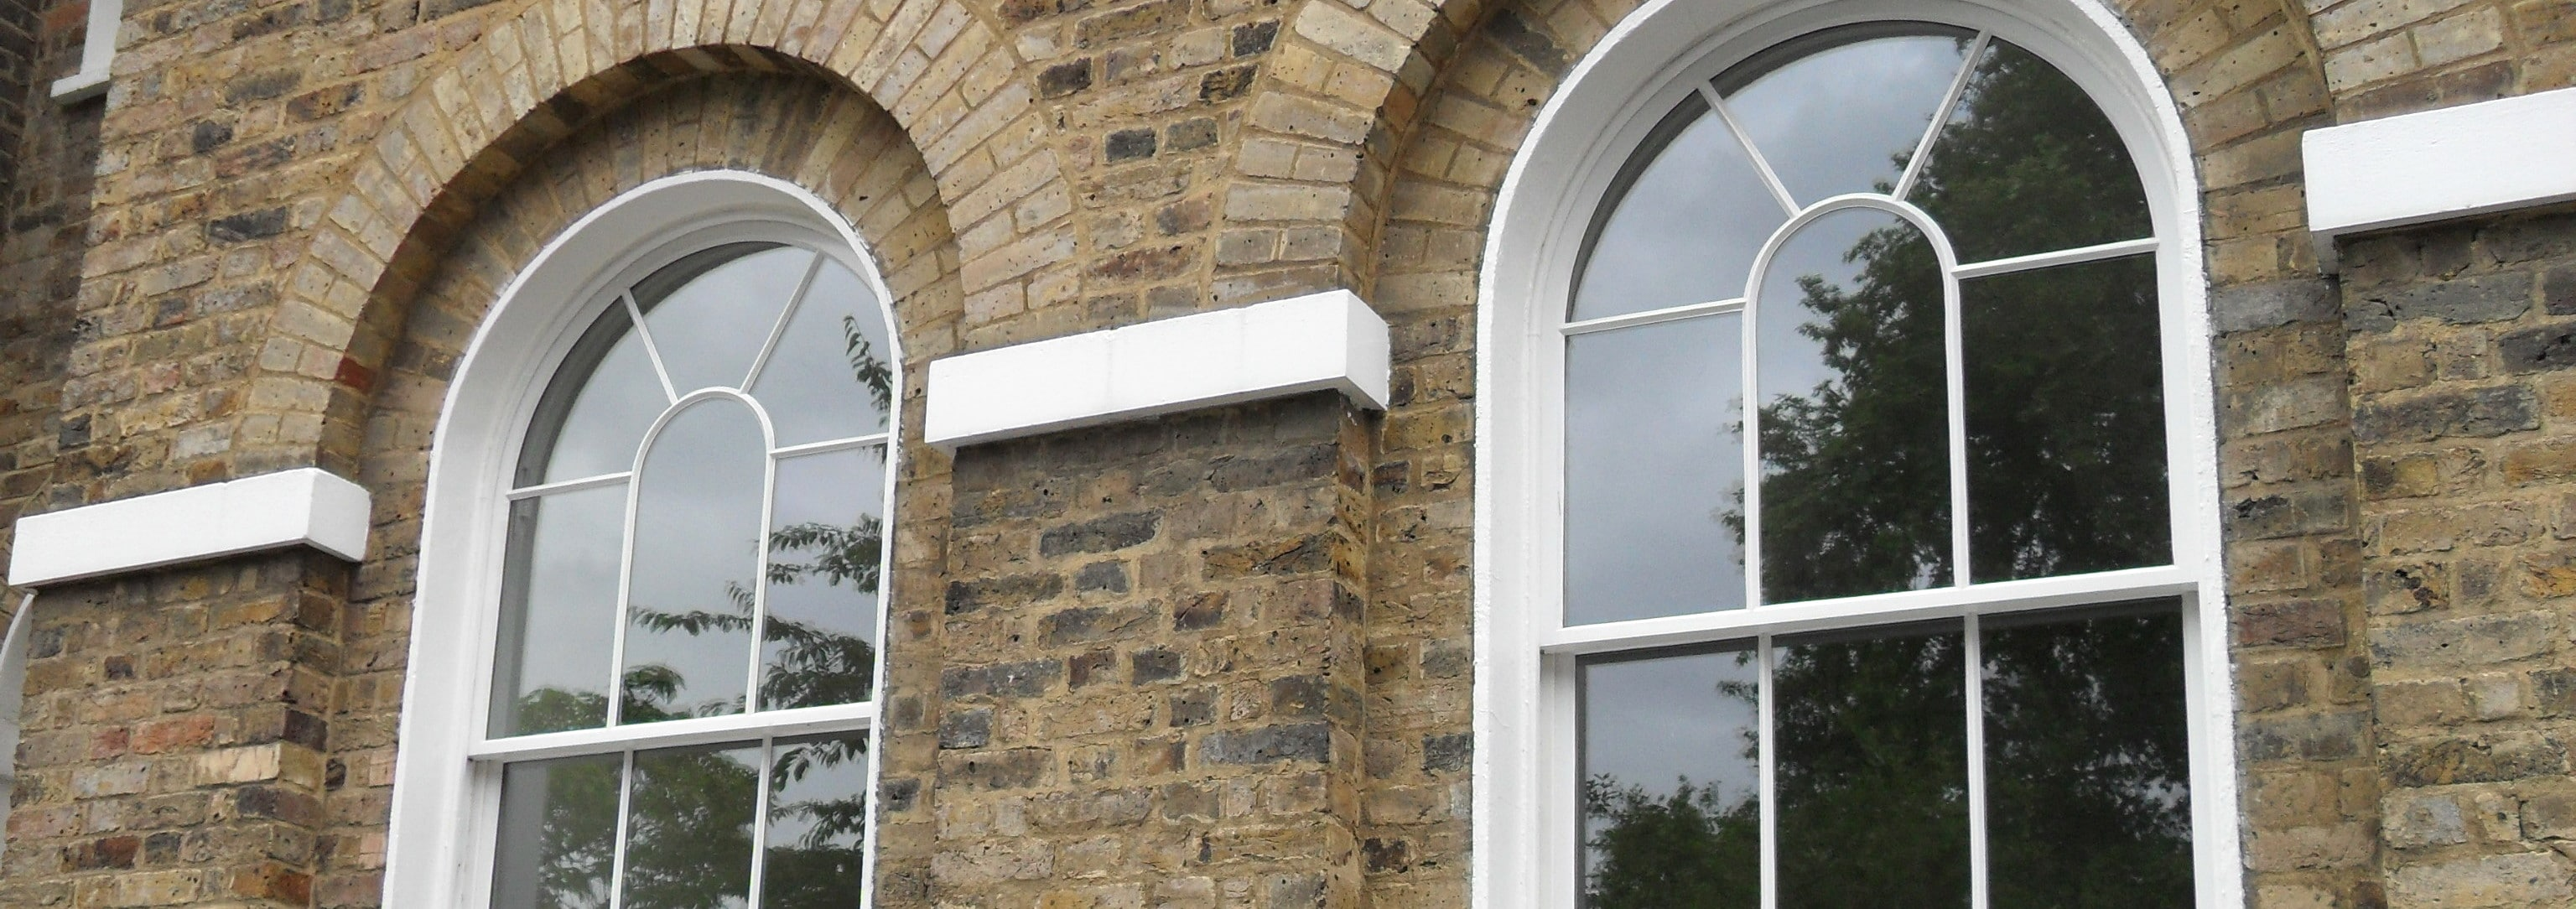 Double glazed sash windows on listed building in Greenwich, London